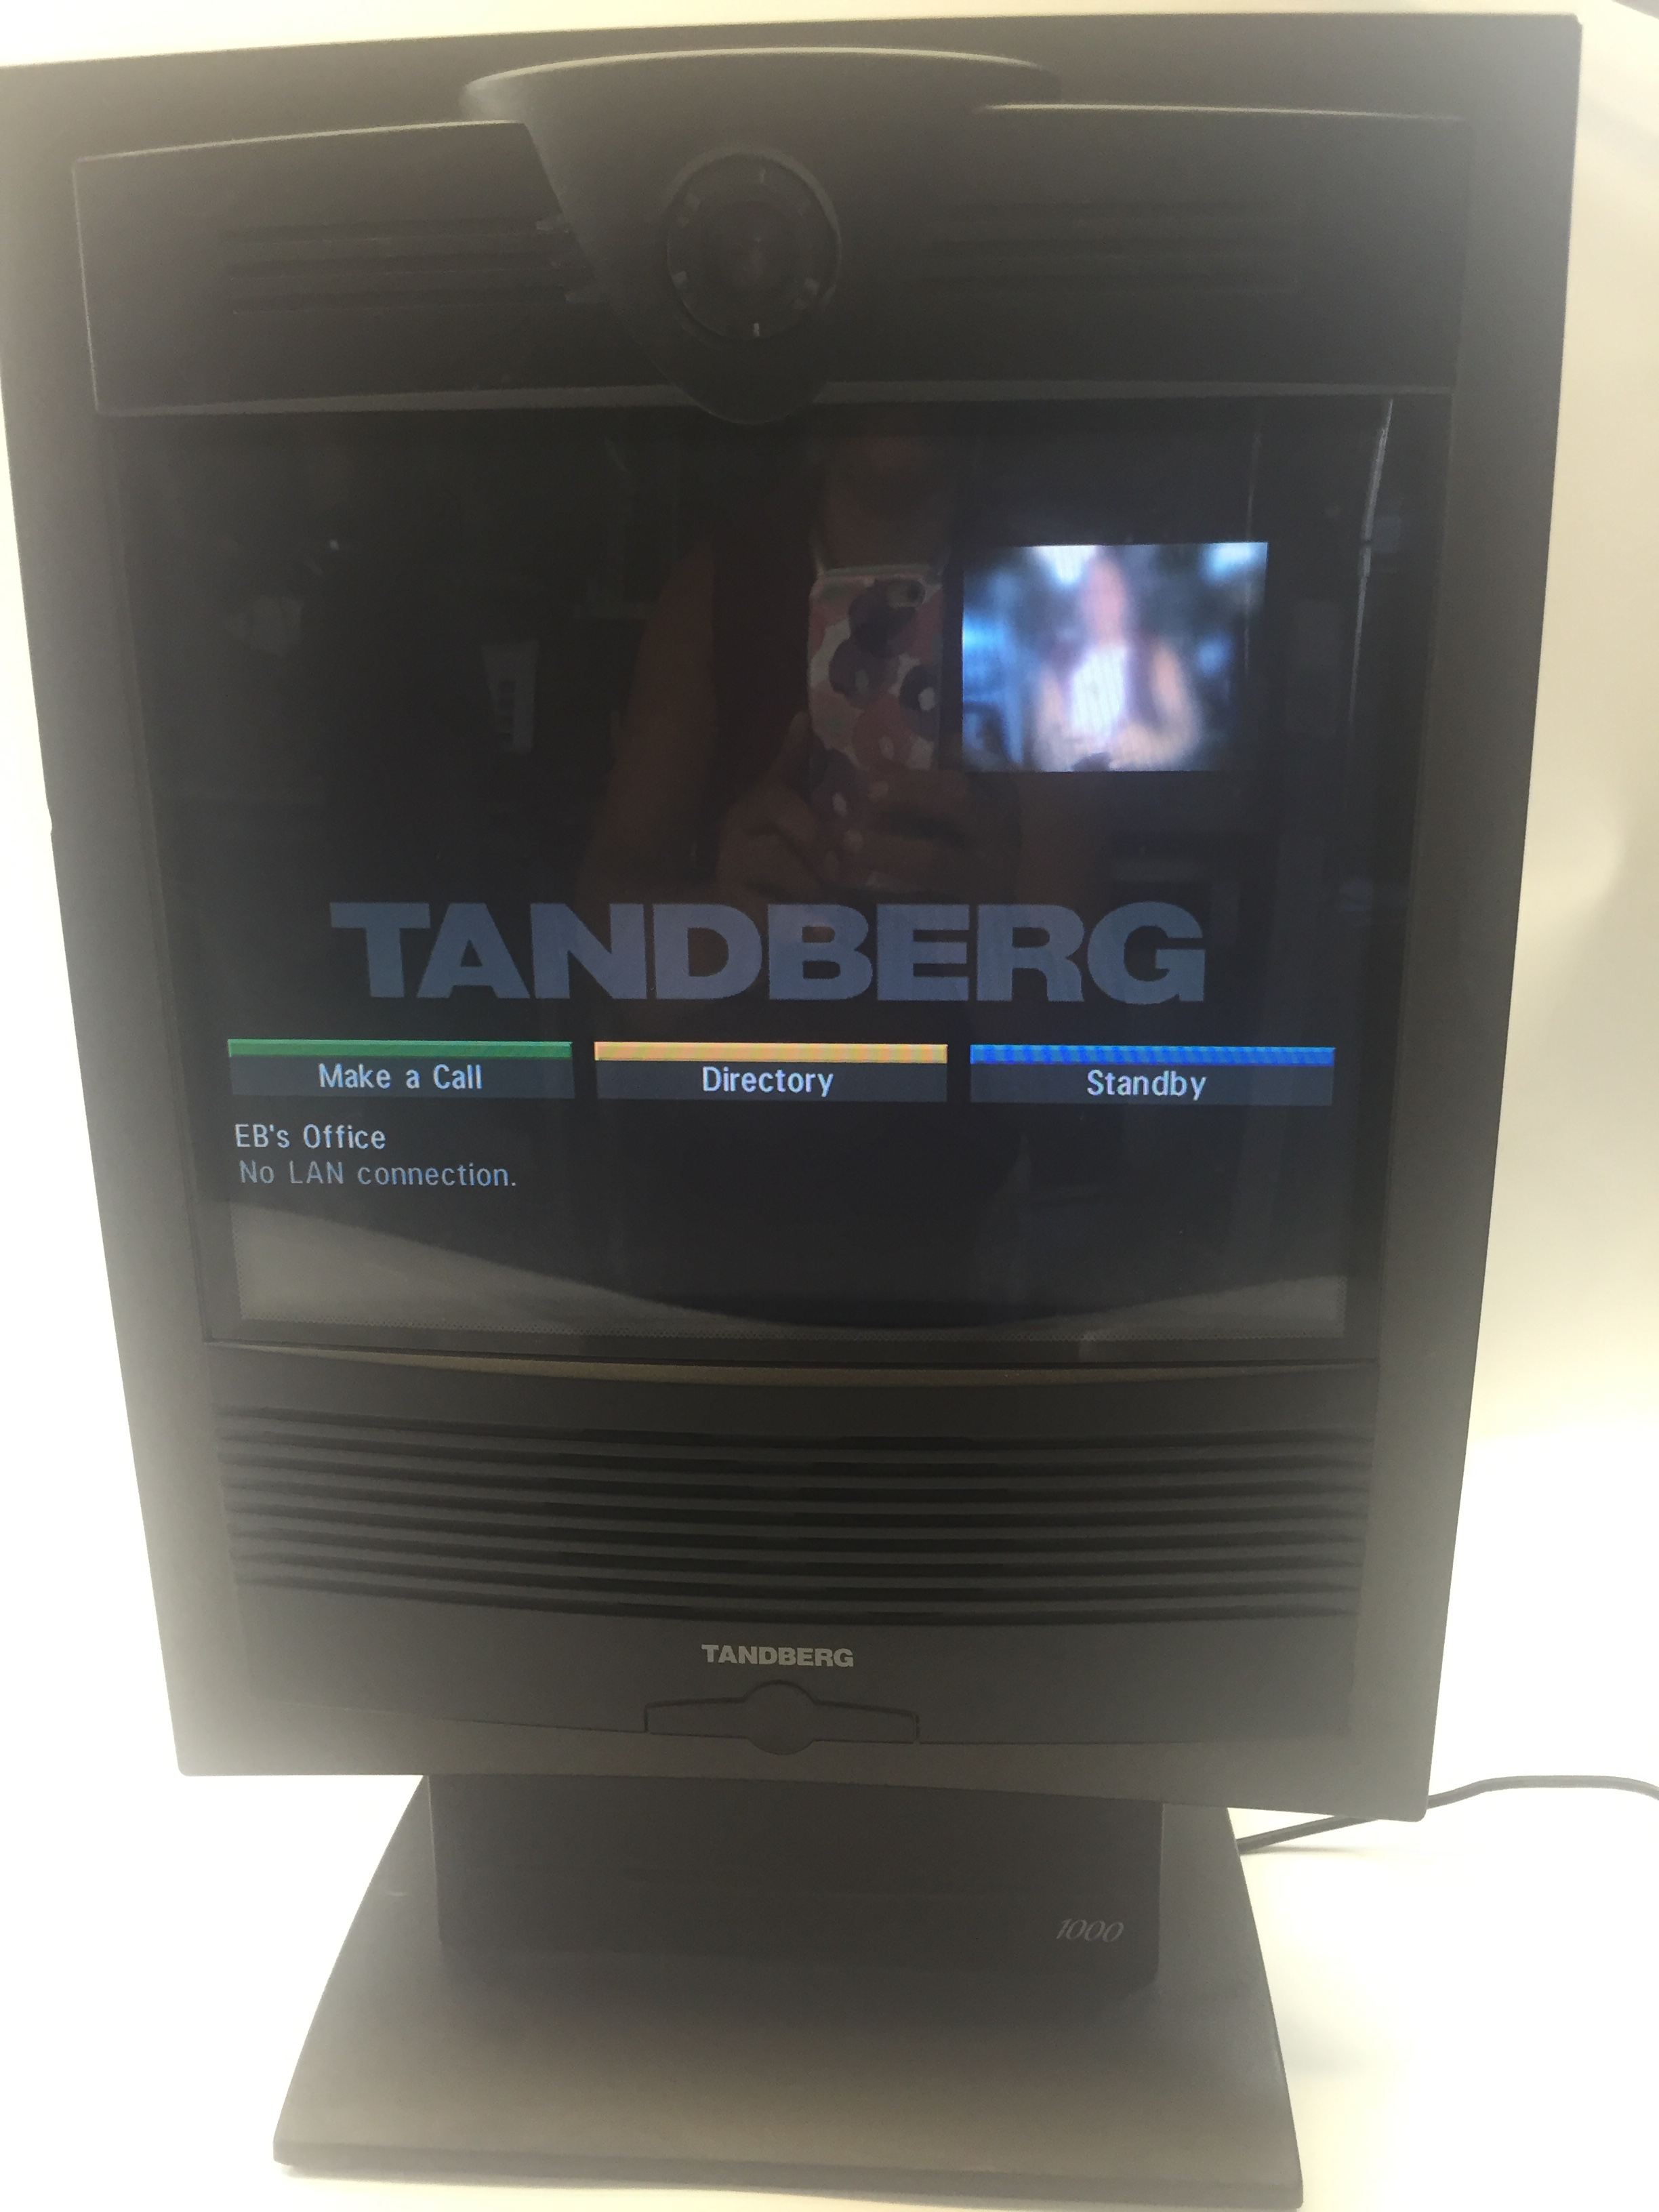 tandberg 1000 ttc7 02 video conferencing system with power supply ebay rh ebay com Tandberg 1000 Ttc7 12 Tandberg 1000 Ttc7 12